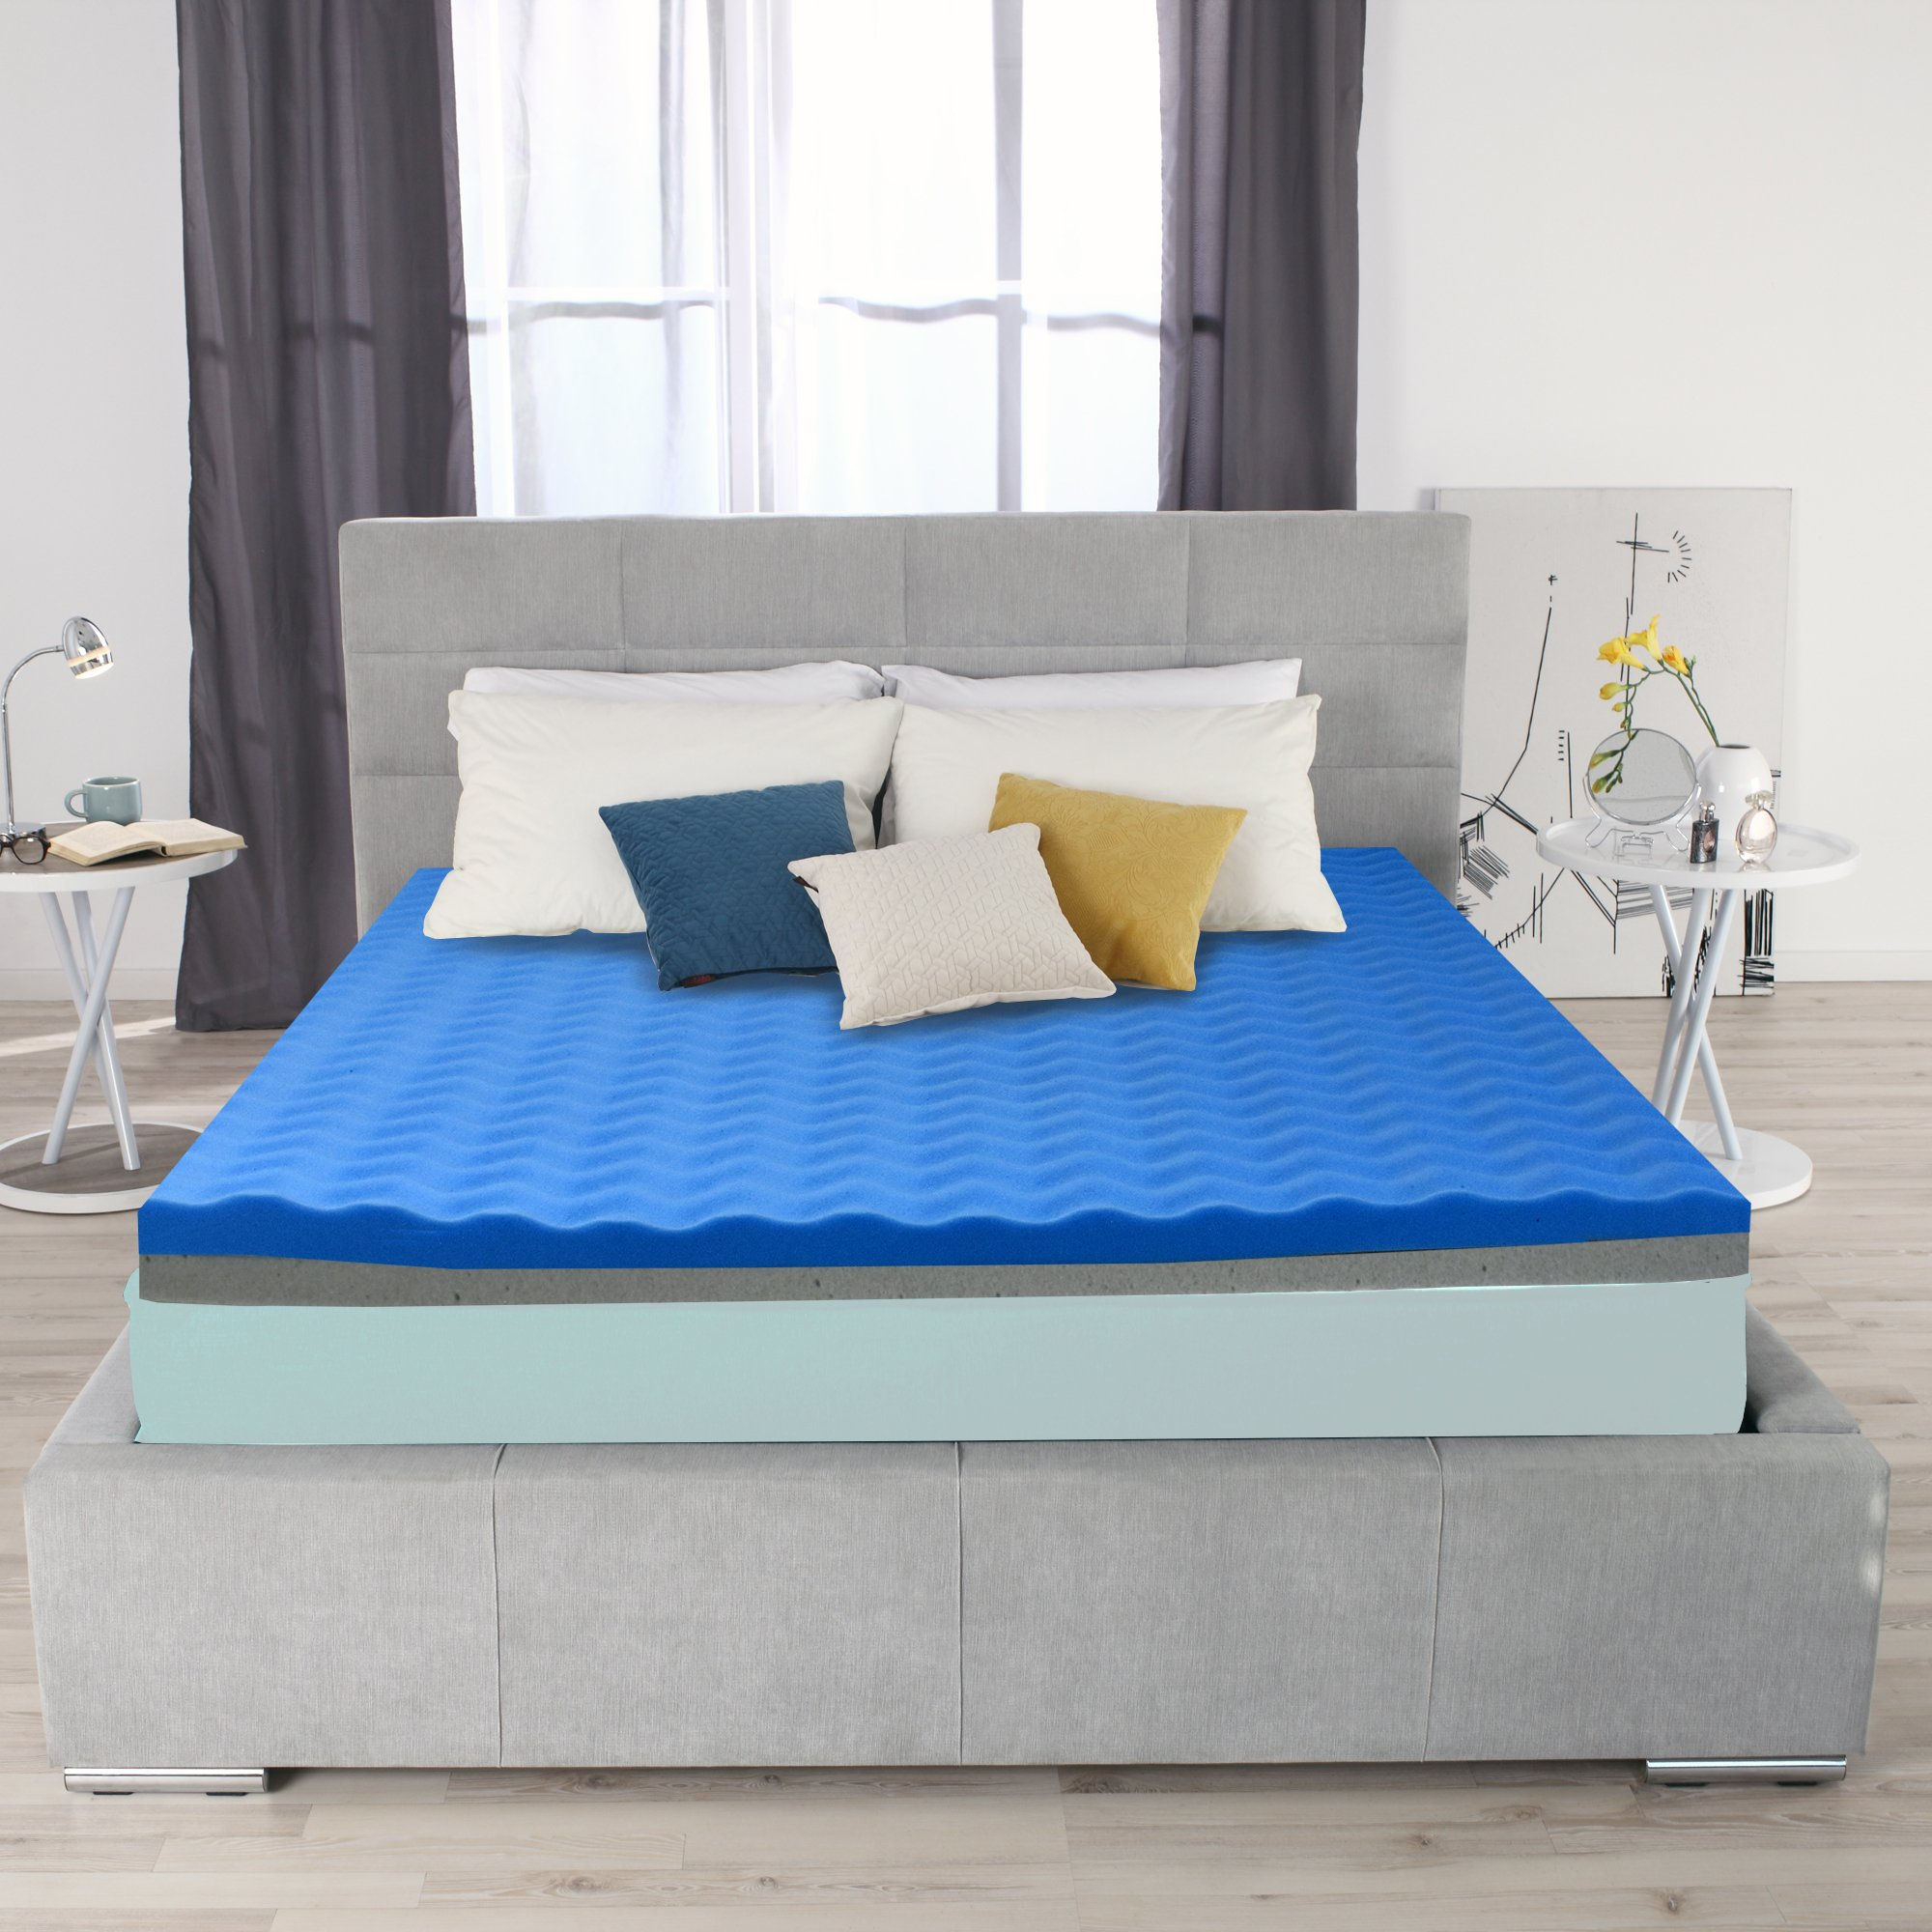 Ayer Comfort 3 Inch Memory Foam Mattress Topper Double Sided Firm and Soft - Graphite Gel and Cool Flow Technology- California King Made in the USA